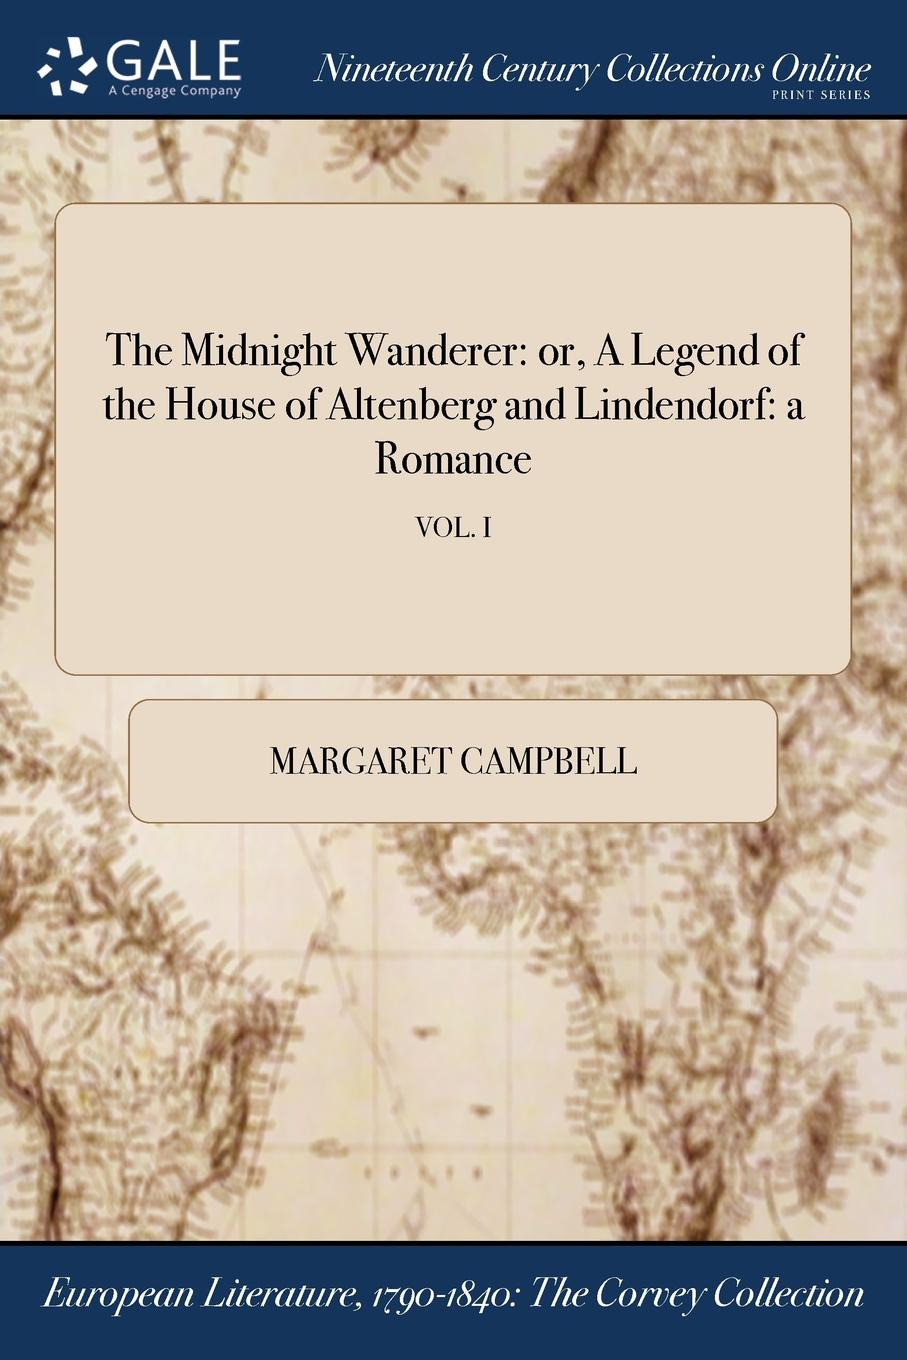 Margaret Campbell The Midnight Wanderer. or, A Legend of the House of Altenberg and Lindendorf: a Romance; VOL. I